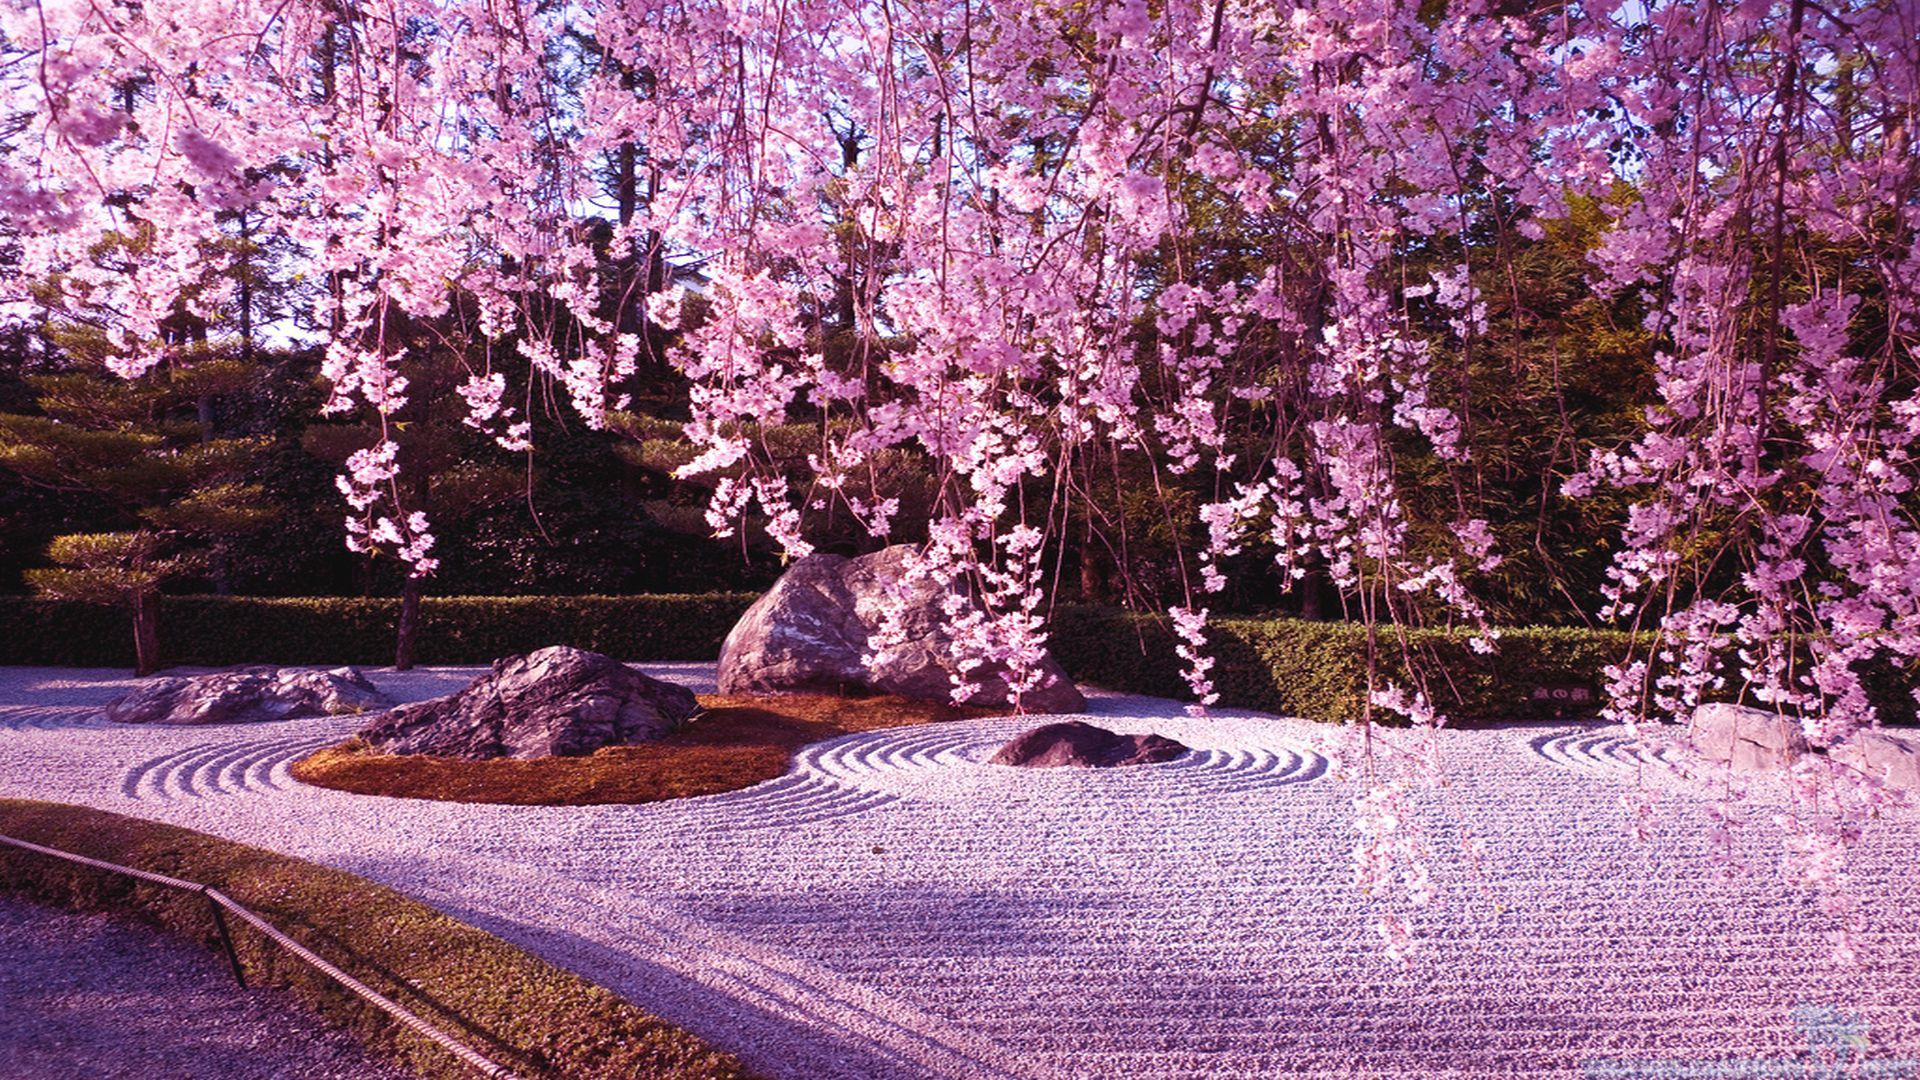 beauty of these sakura cherry trees blossoming in japan will leave you speechless - Japanese Garden Cherry Blossom Bridge